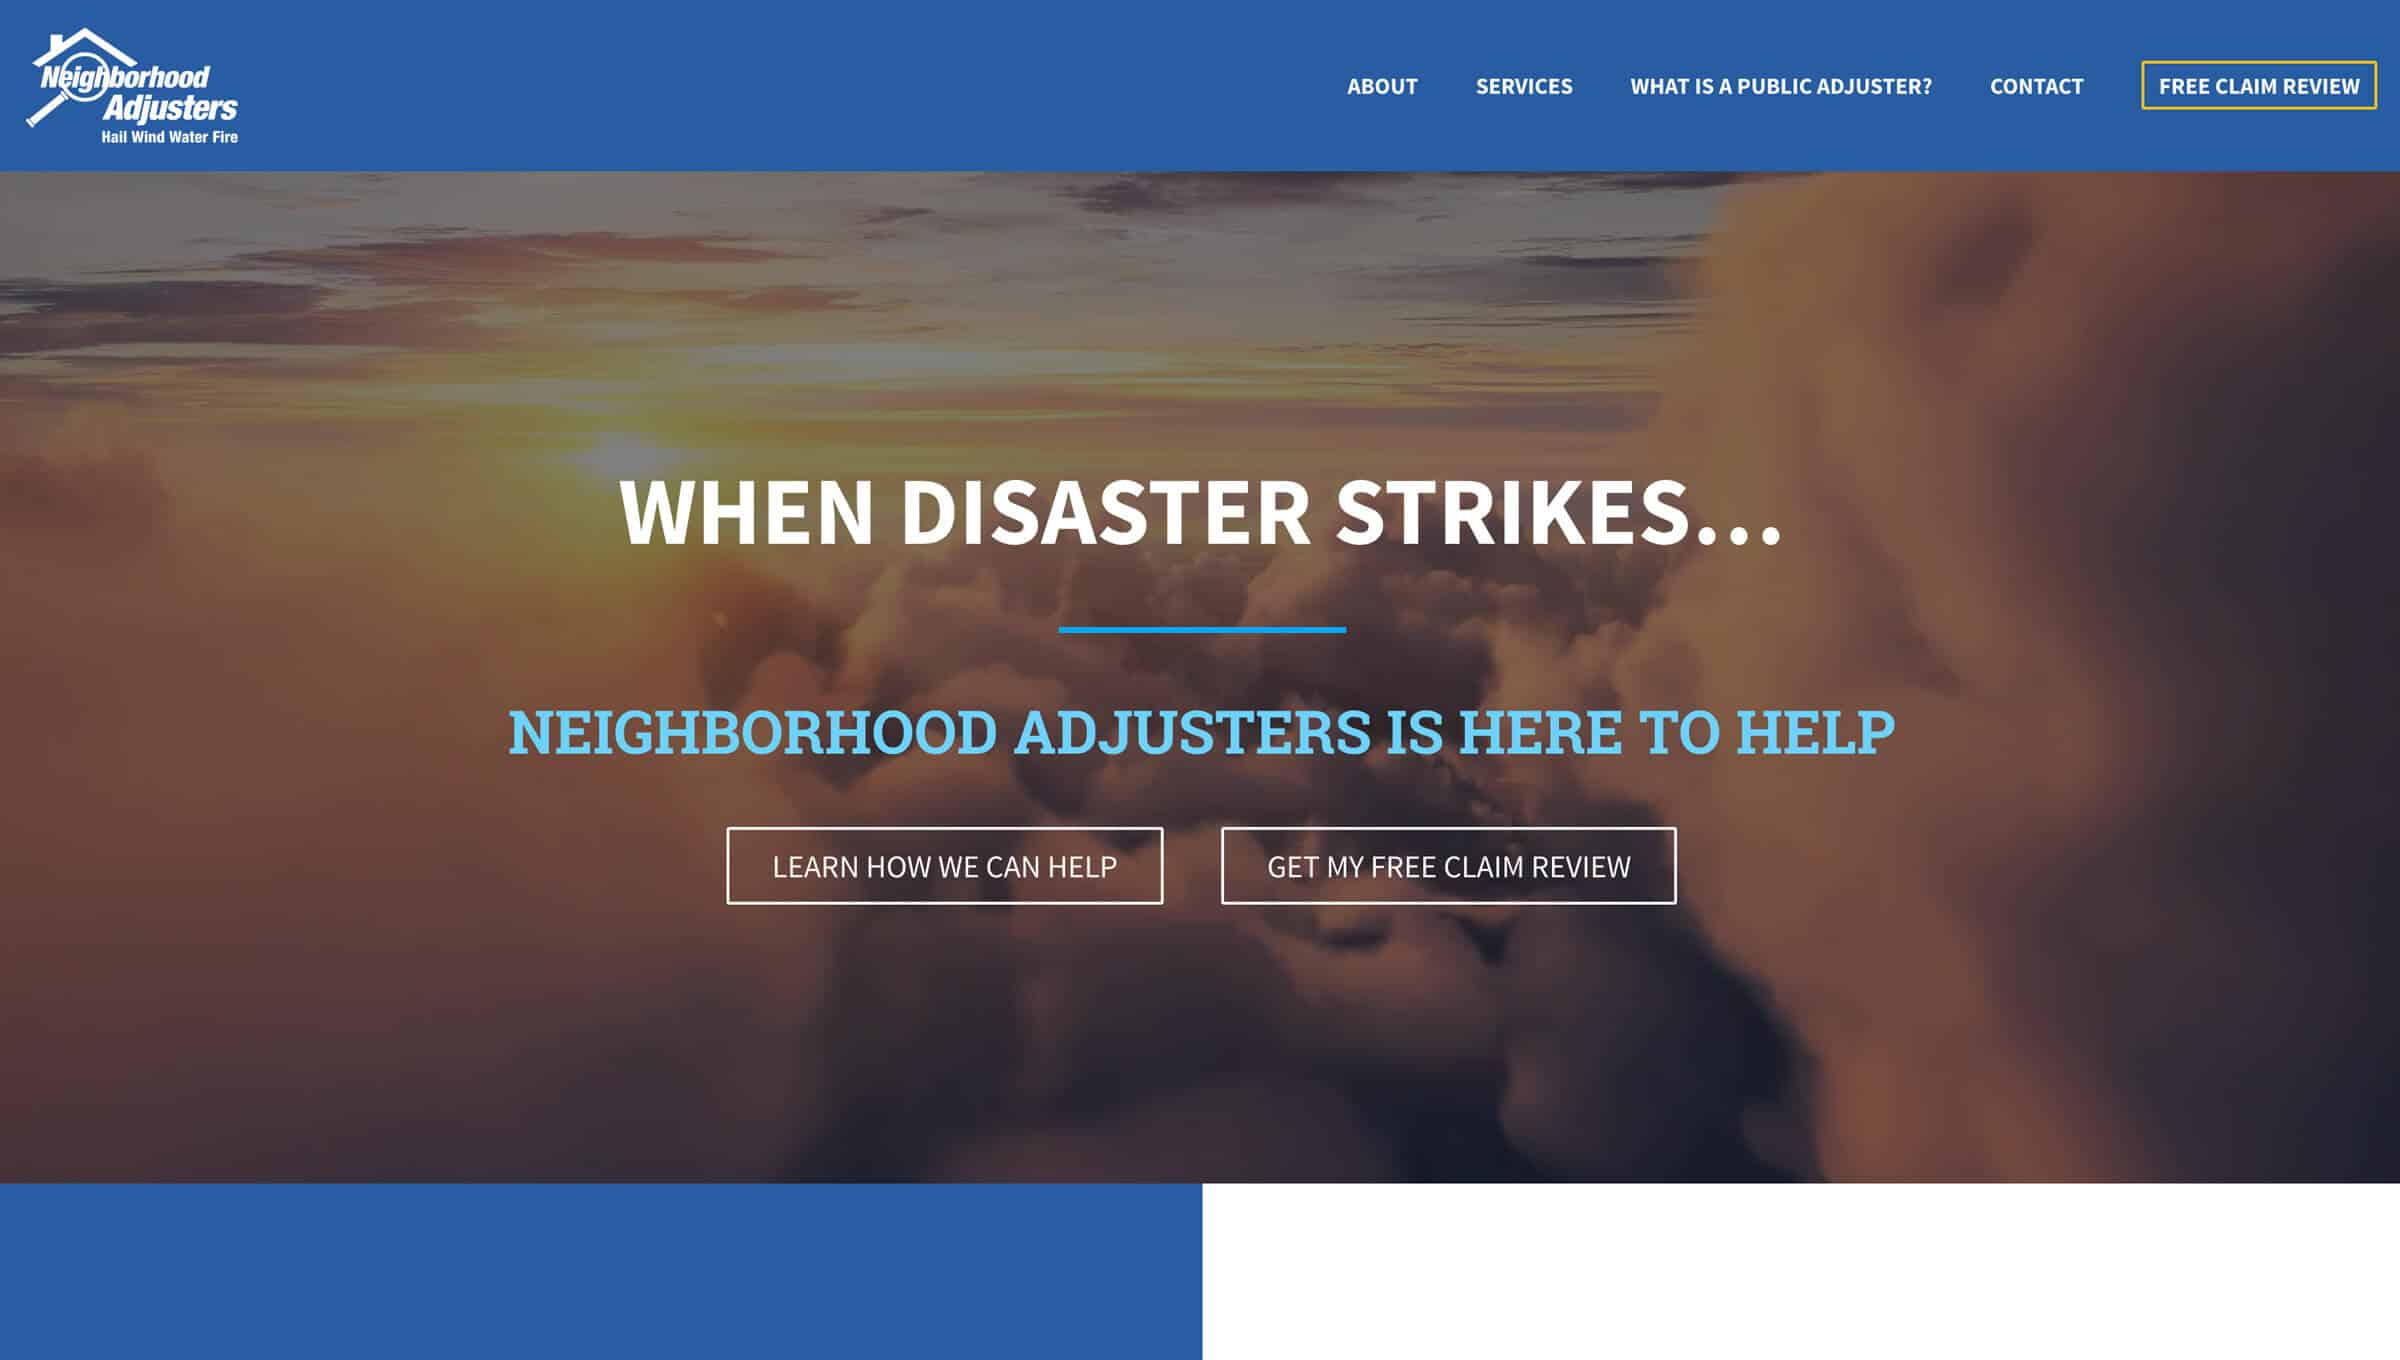 neighborhood adjusters homepage design